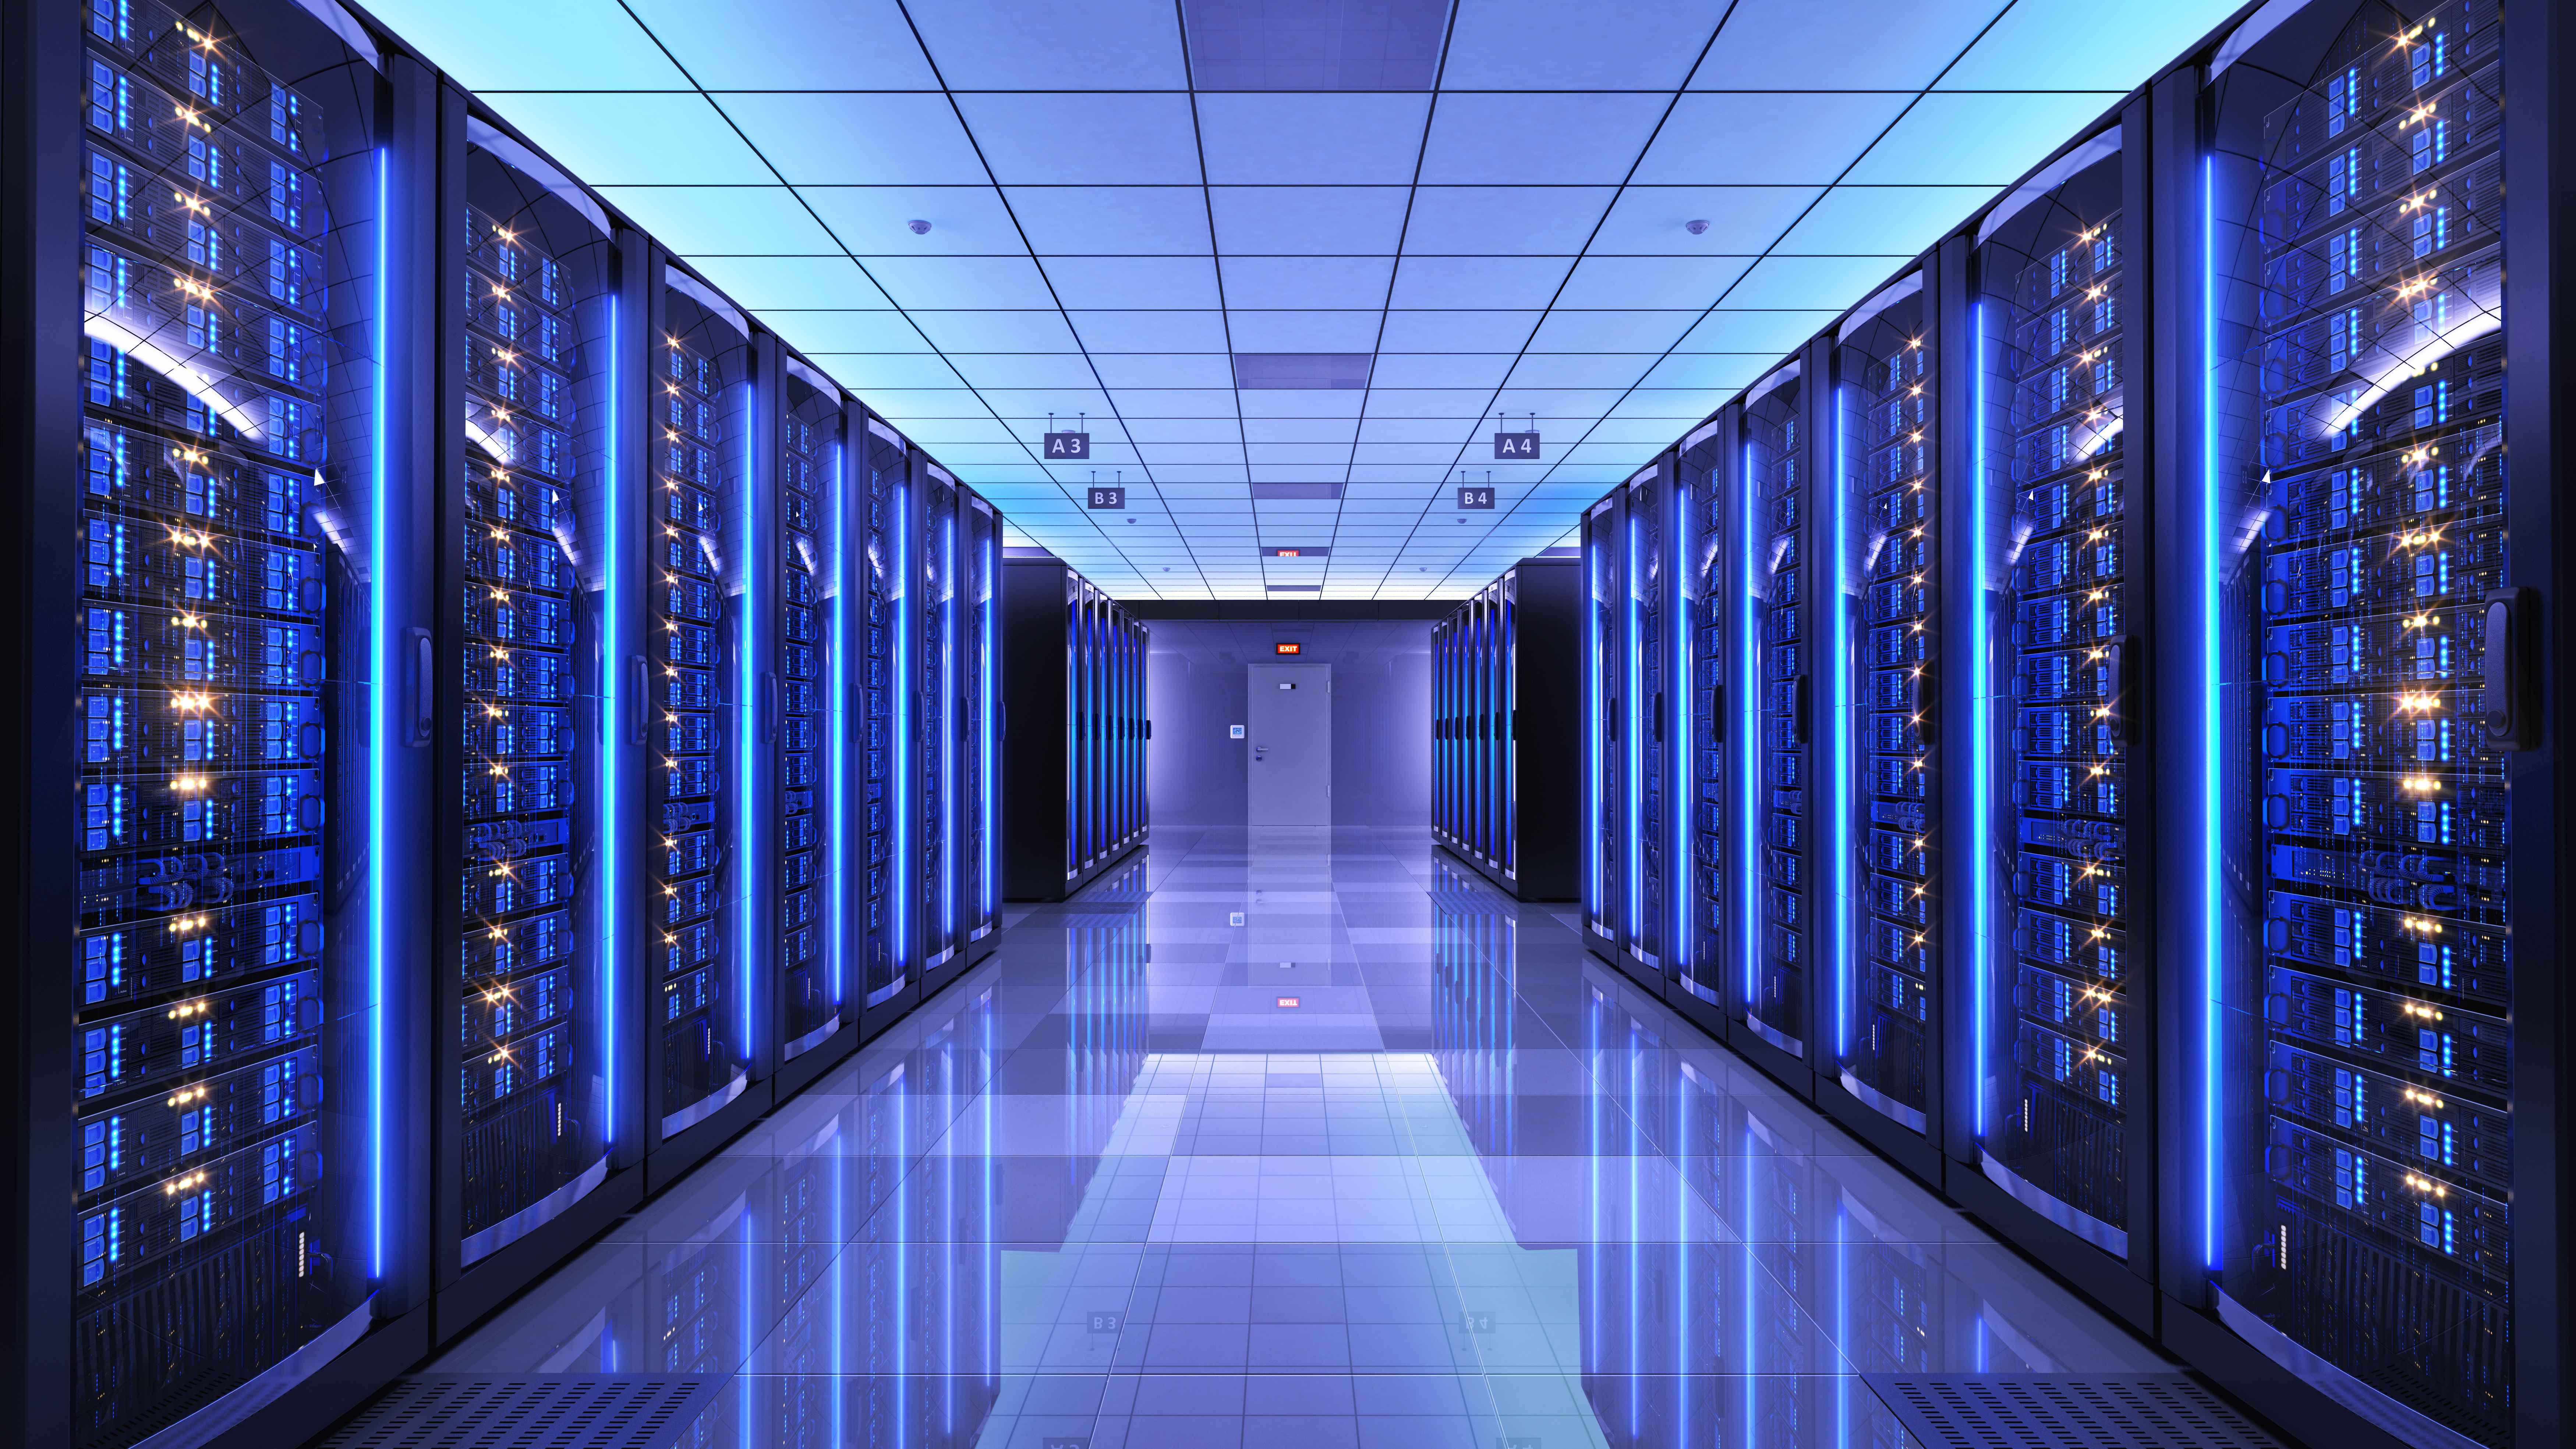 Need More Computing Capacity Now? Try a Prefabricated Modular Data Center.